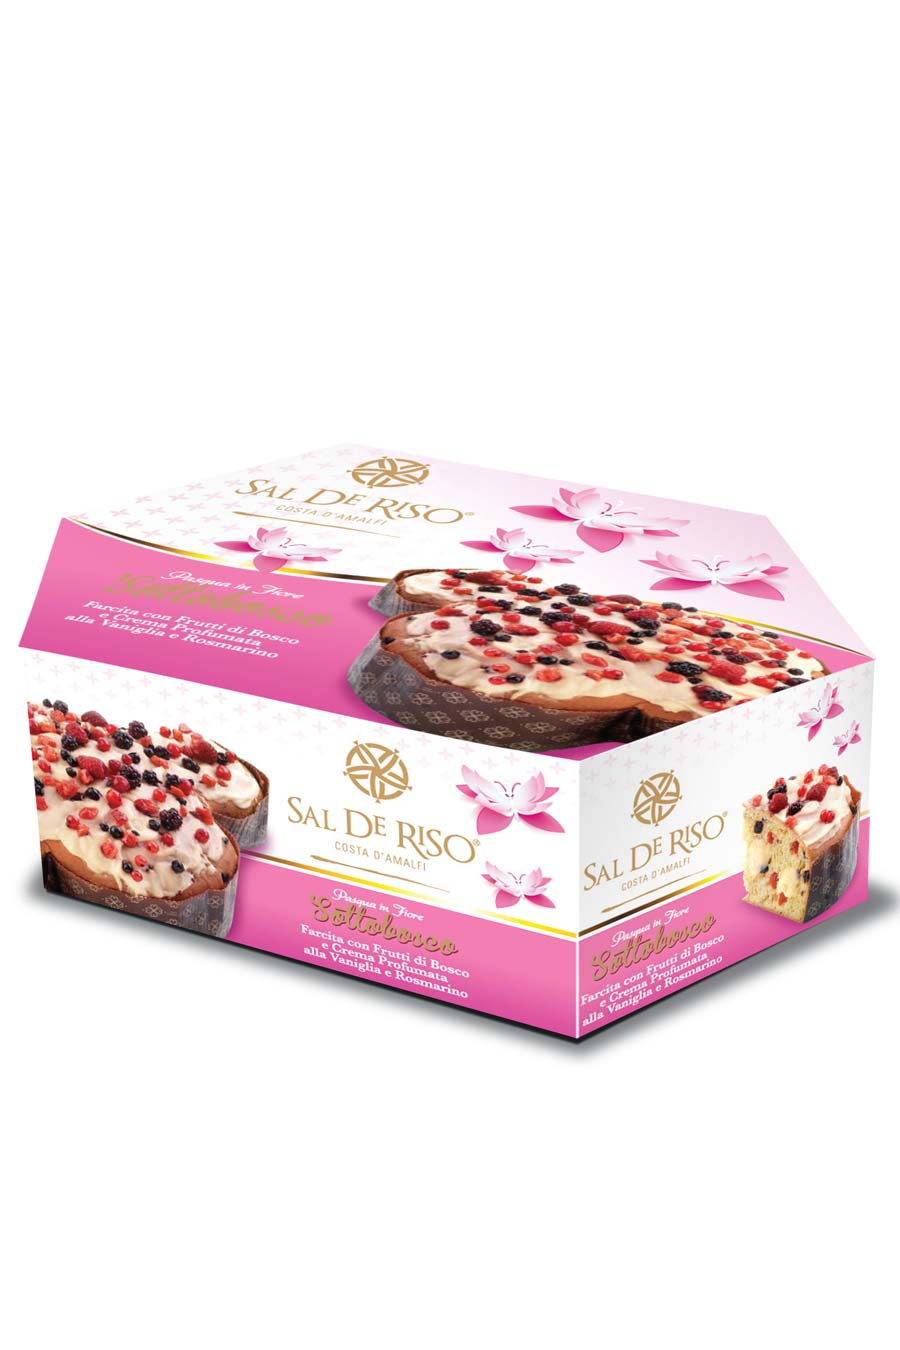 "Sal De Riso Wild Berries Easter Colomba ""Sottobosco"" - Agrumia"